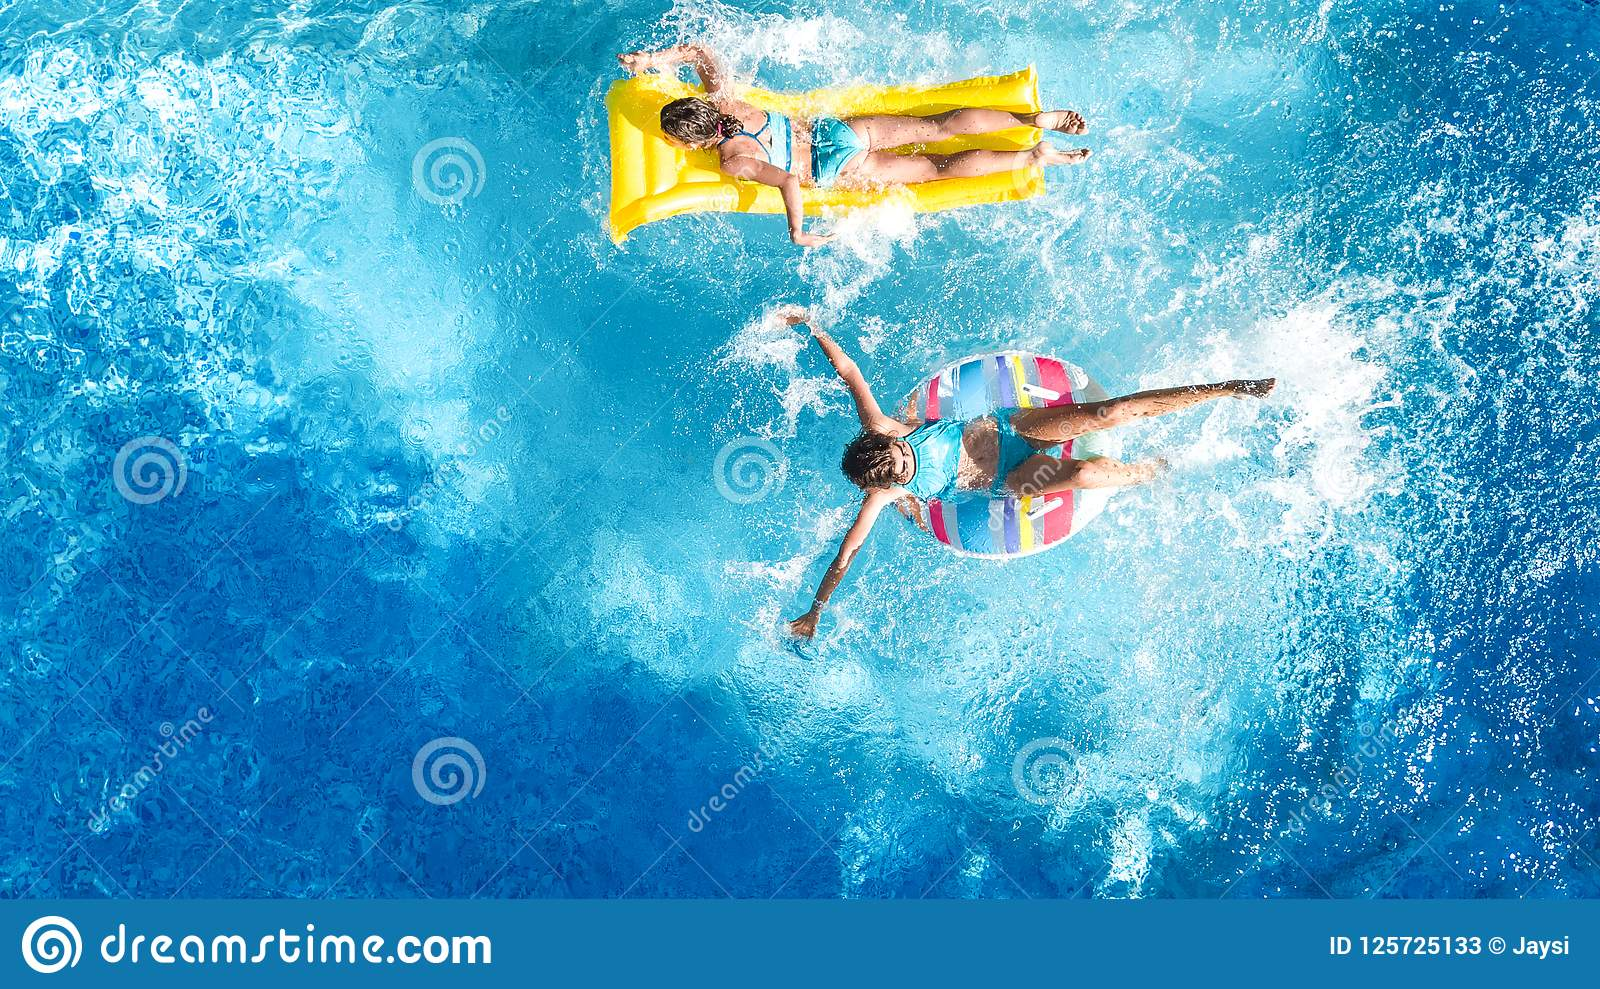 Aerial drone view of children in swimming pool from above, happy kids swim on inflatable ring donuts, girls have fun in water